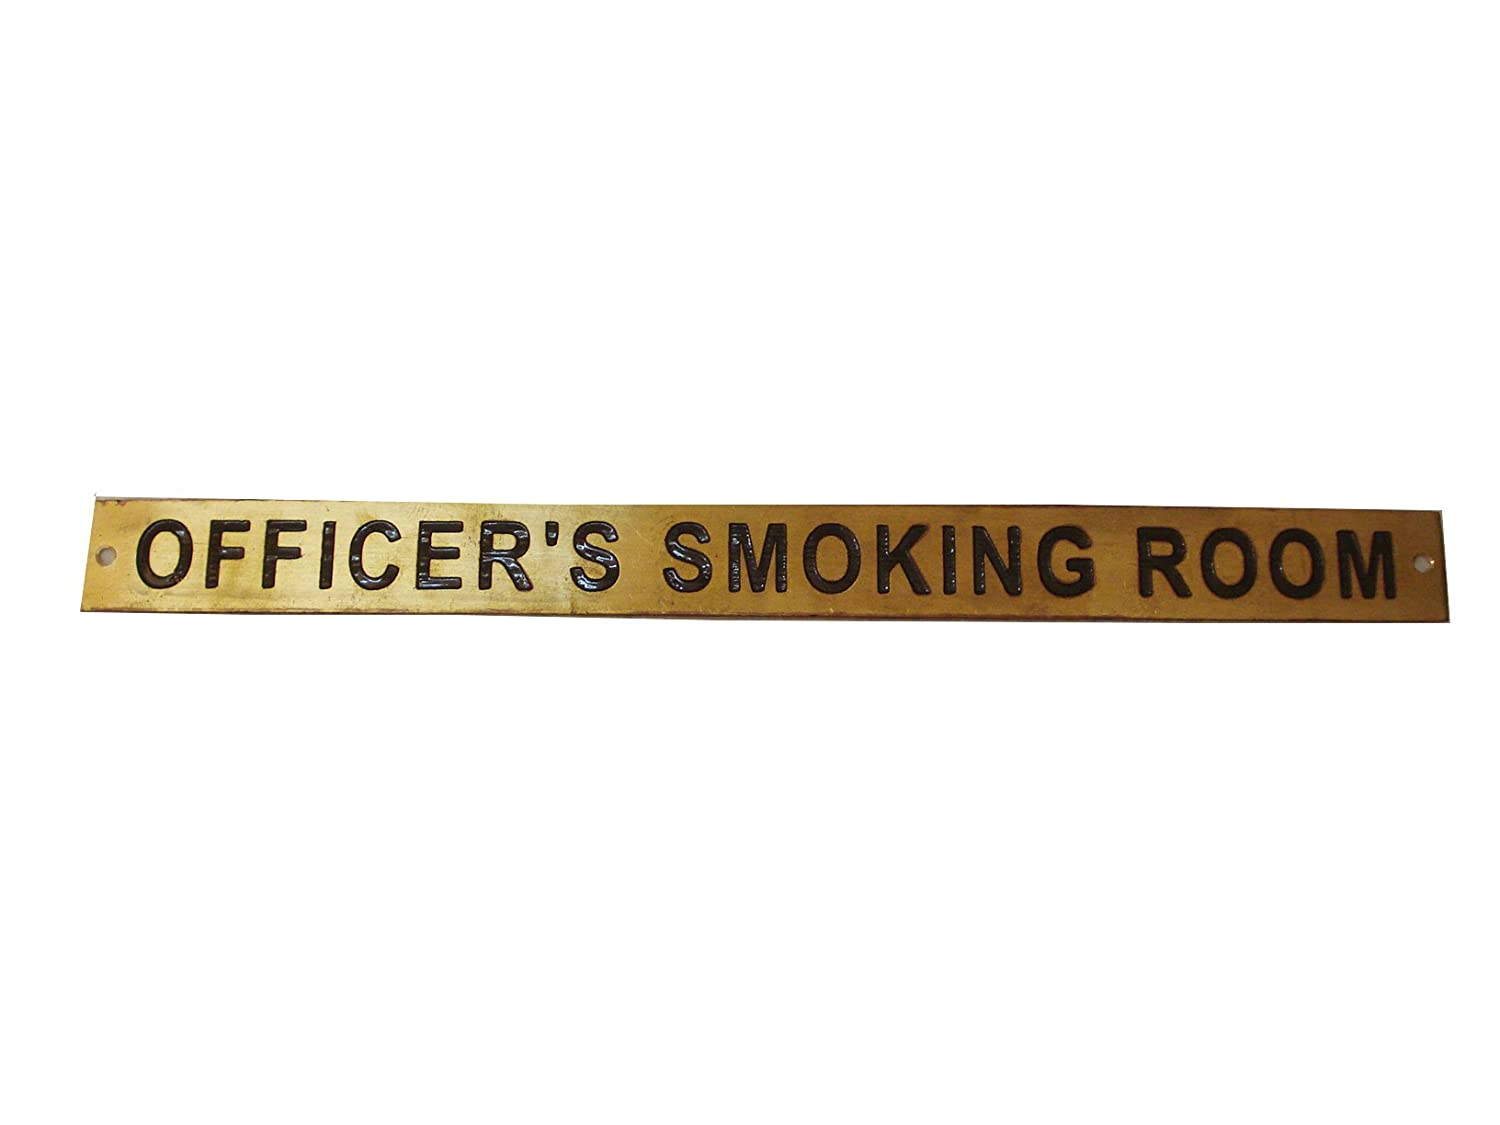 260 Officer/'S Smoking Room 12 x 1 Inches Marine Brass Door Sign Boat//Nautical